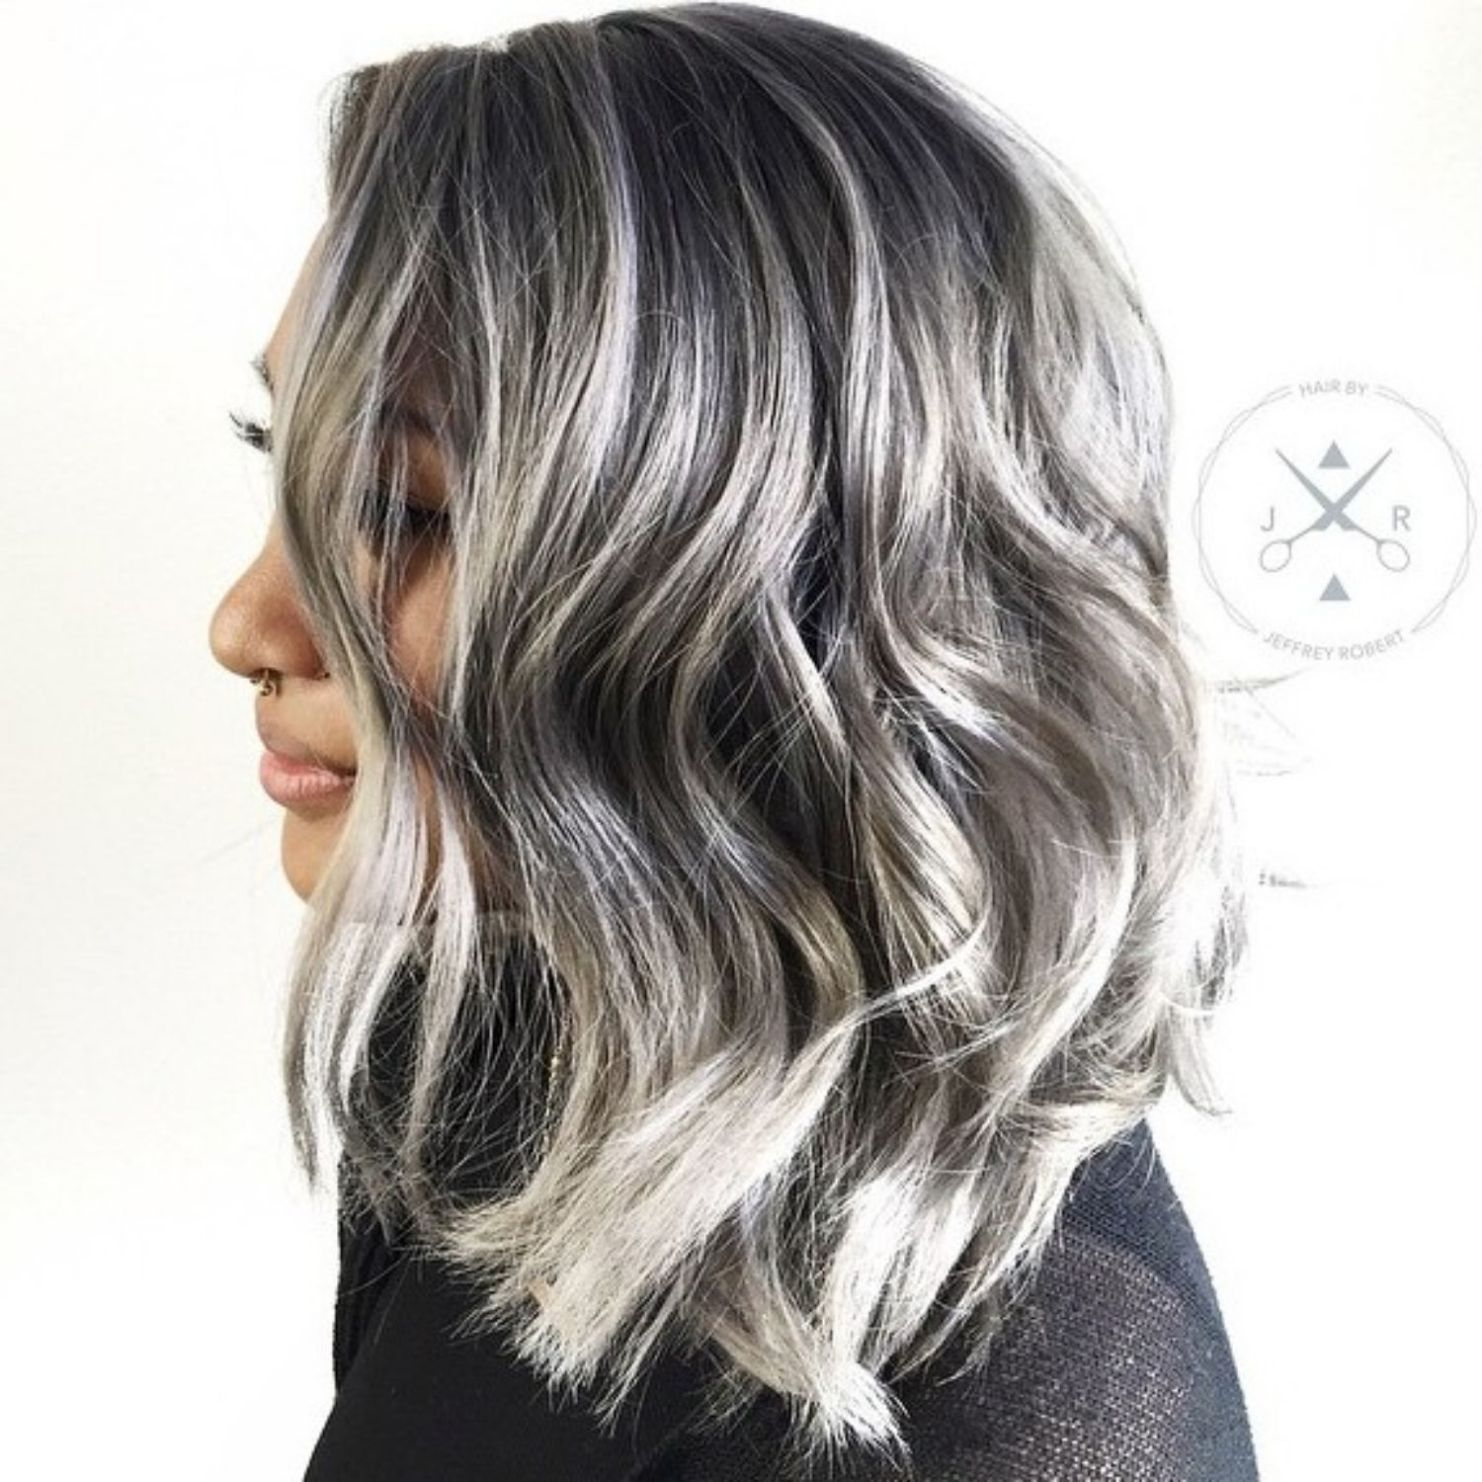 Medium Black Hair With Silver Highlights Medium Black Hair Black Hair With Highlights Brown Hair With Silver Highlights